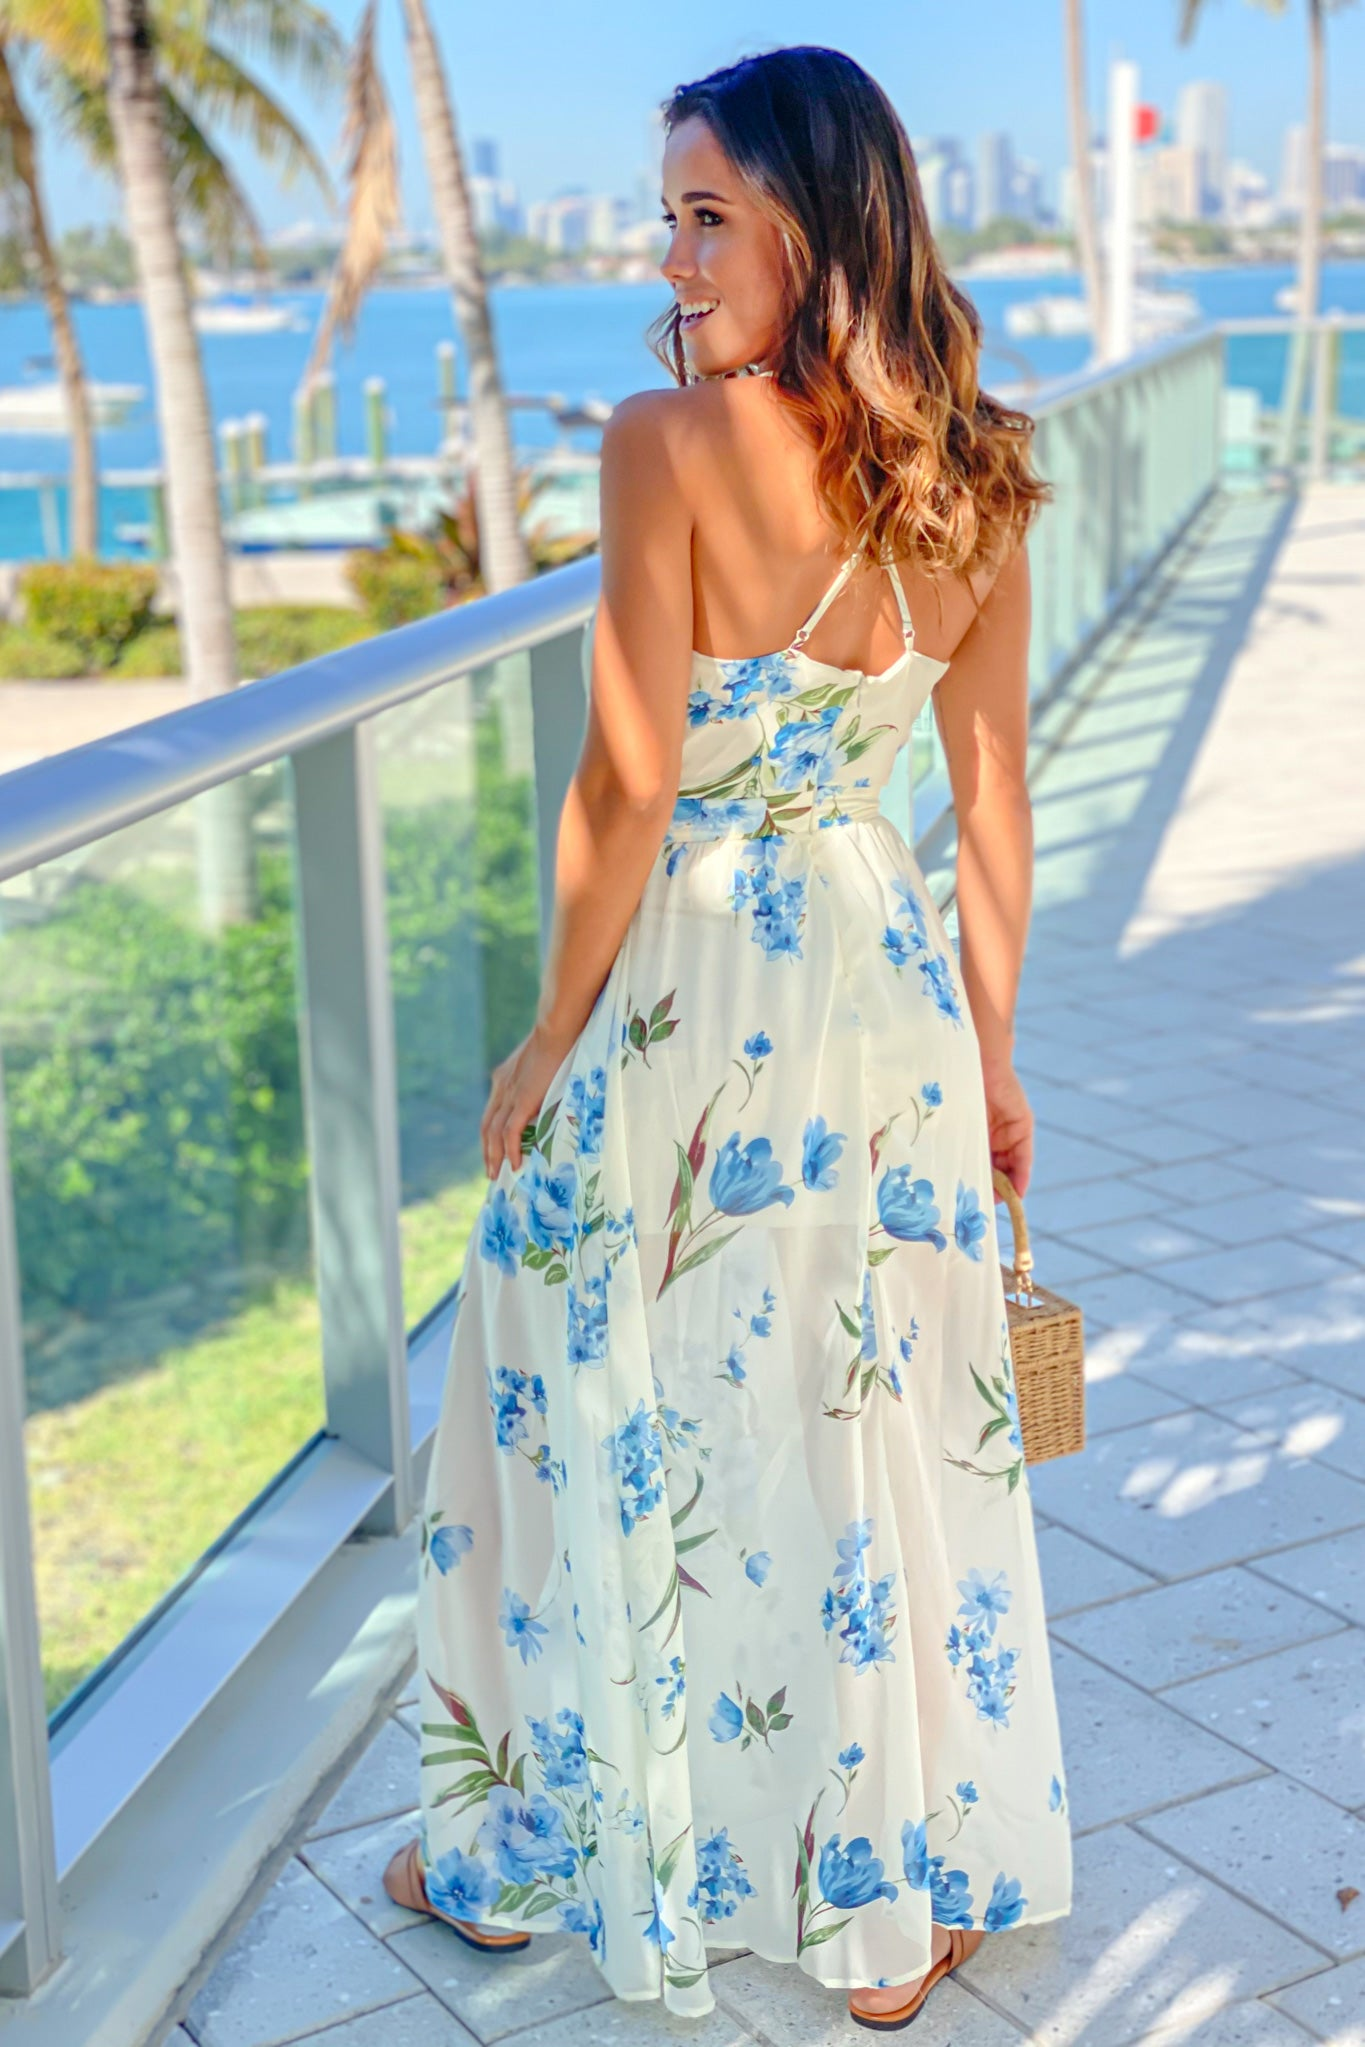 off white and blue floral criss cross back maxi dress